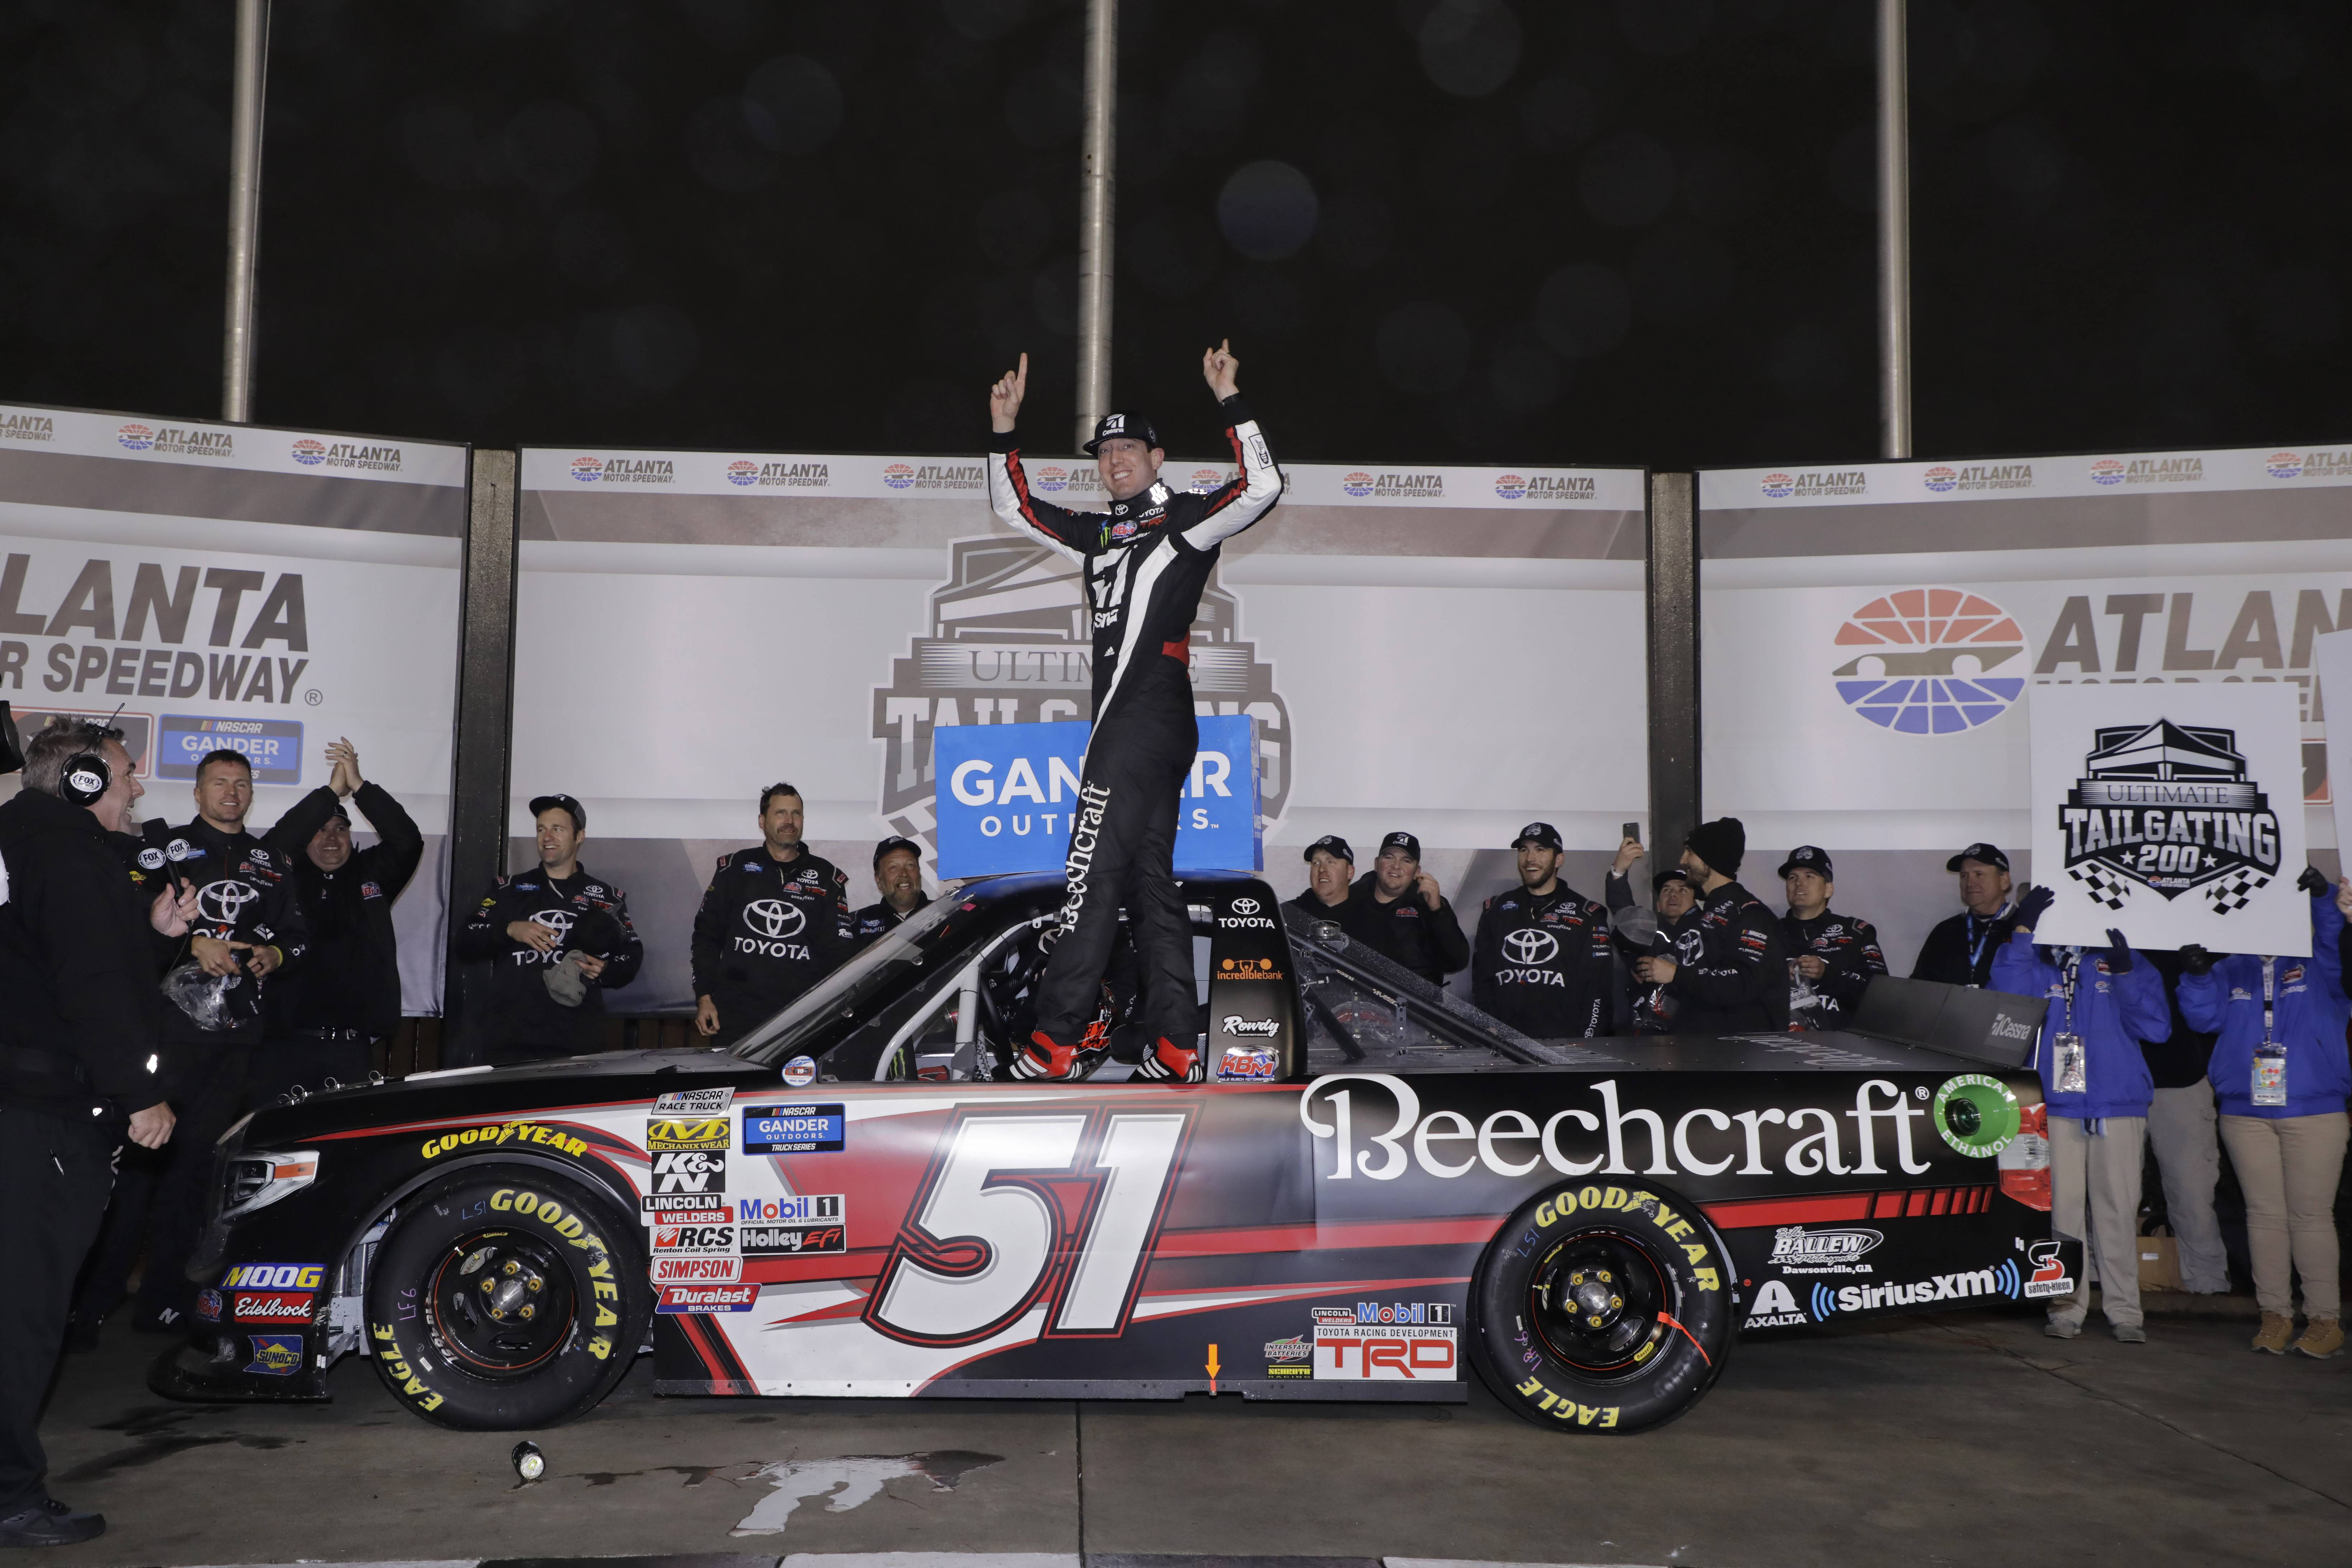 Kyle Busch's victory in Saturday's Ultimate Tailgating 200 at Atlanta Motor Speedway enabled the veteran to surpass Ron Hornaday as the winningest driver in NASCAR Gander Outdoors Truck Series competition. (HHP/Harold Hinson photo)